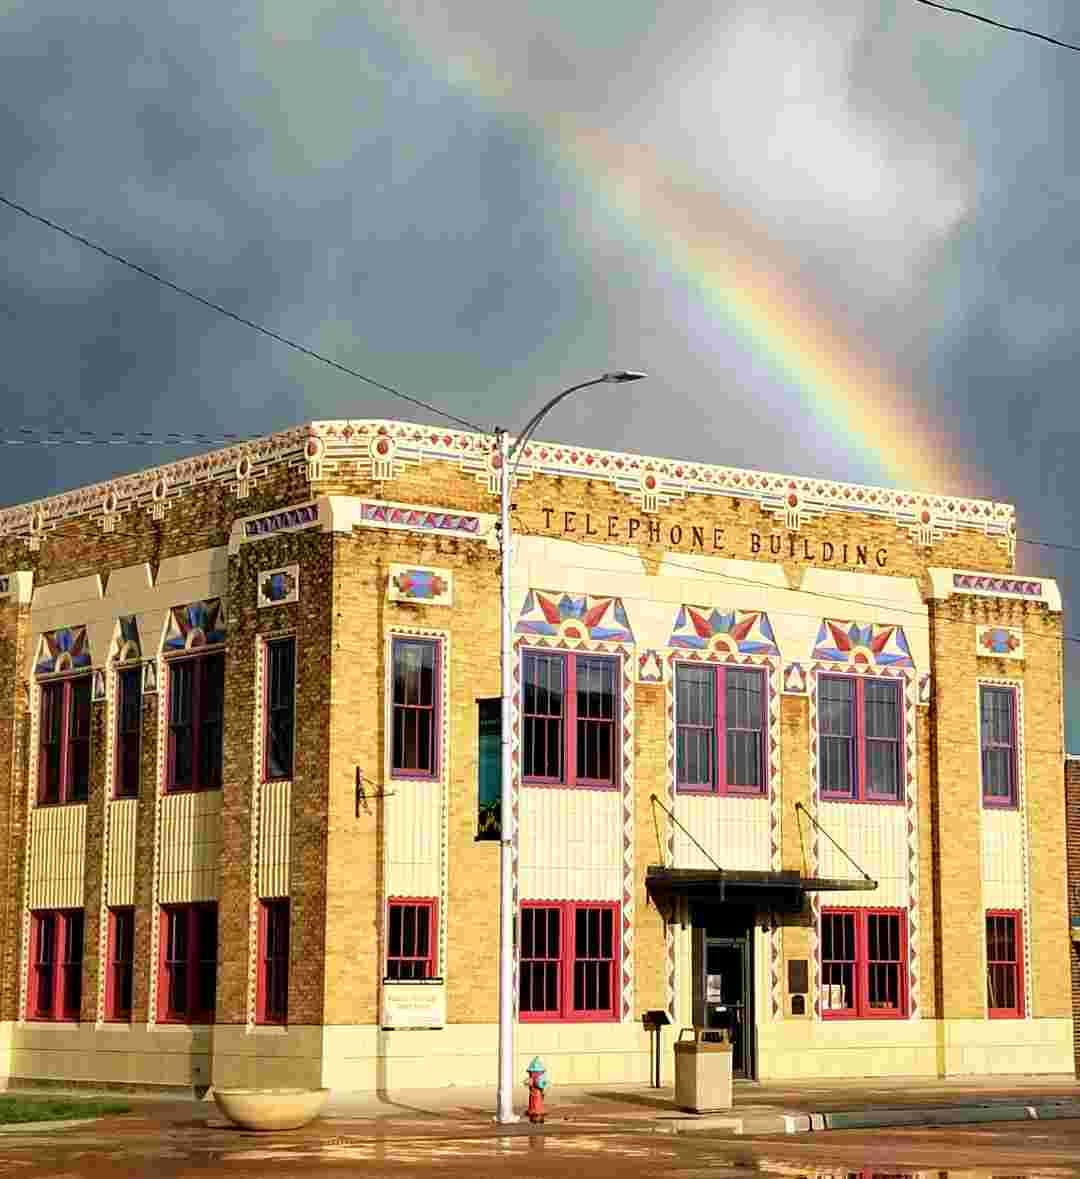 Old brick building with rainbow behind it